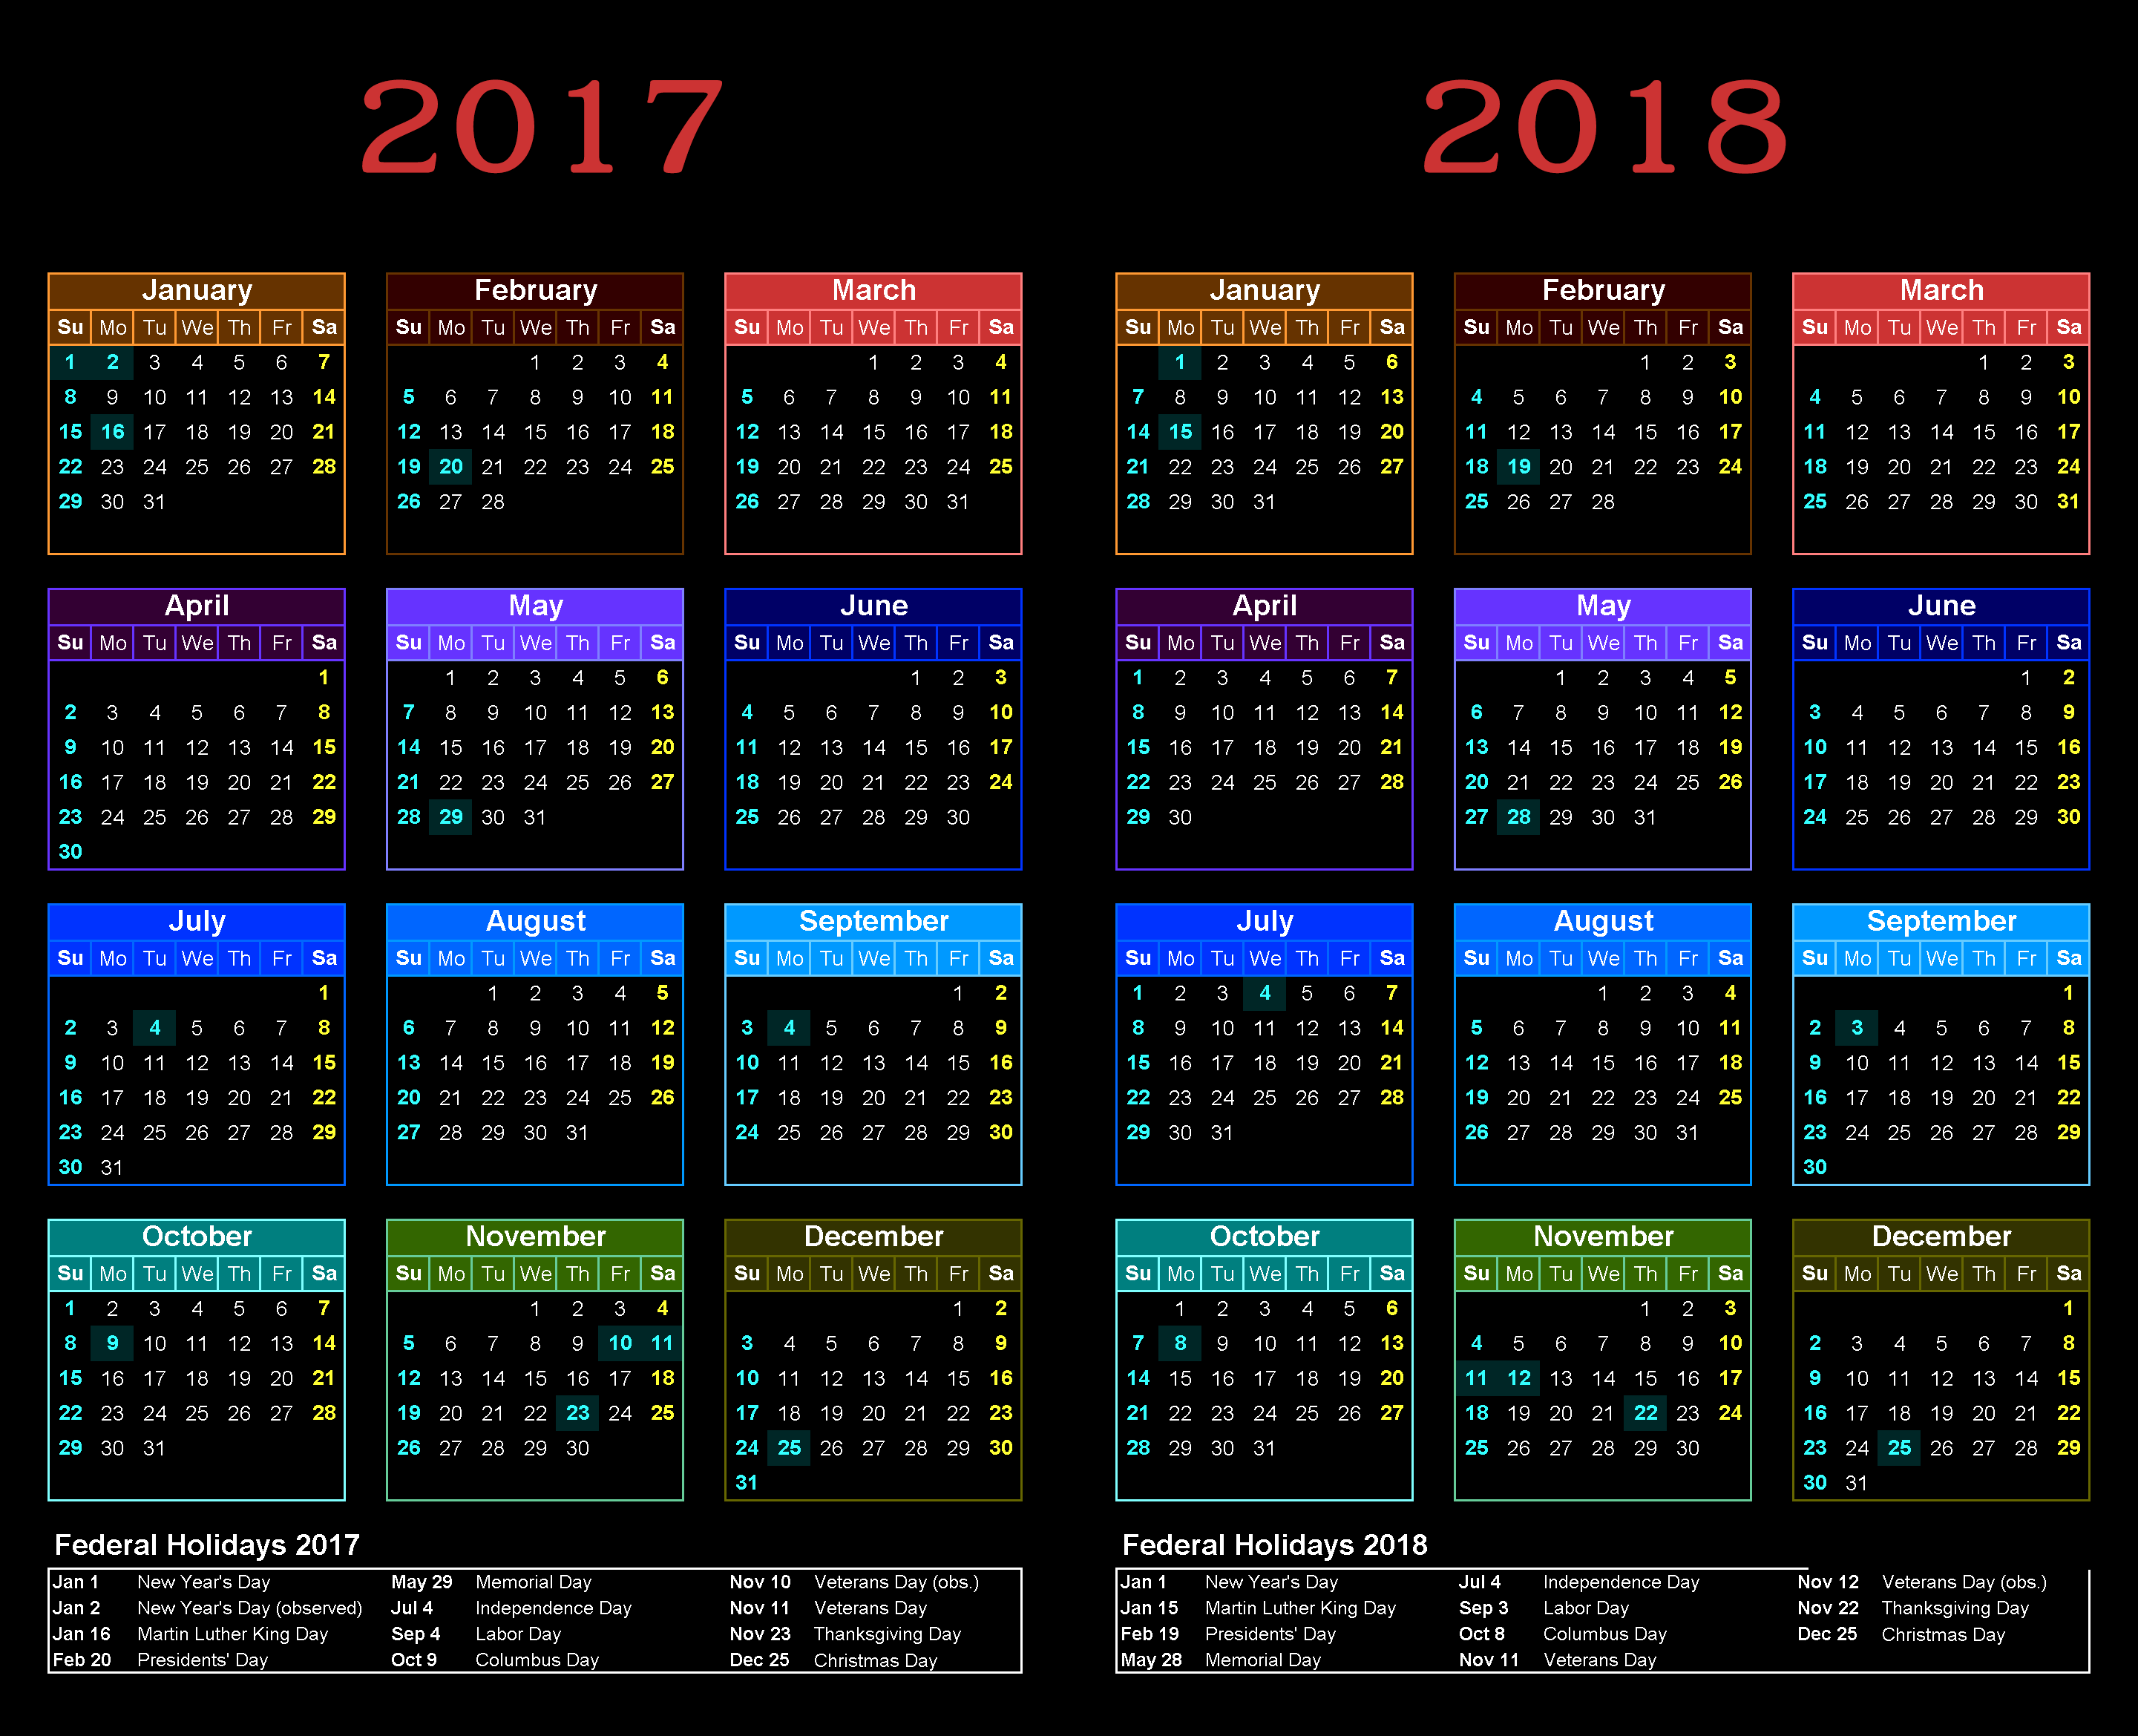 Download Calendar 2017 2018 with USA federal holidays list